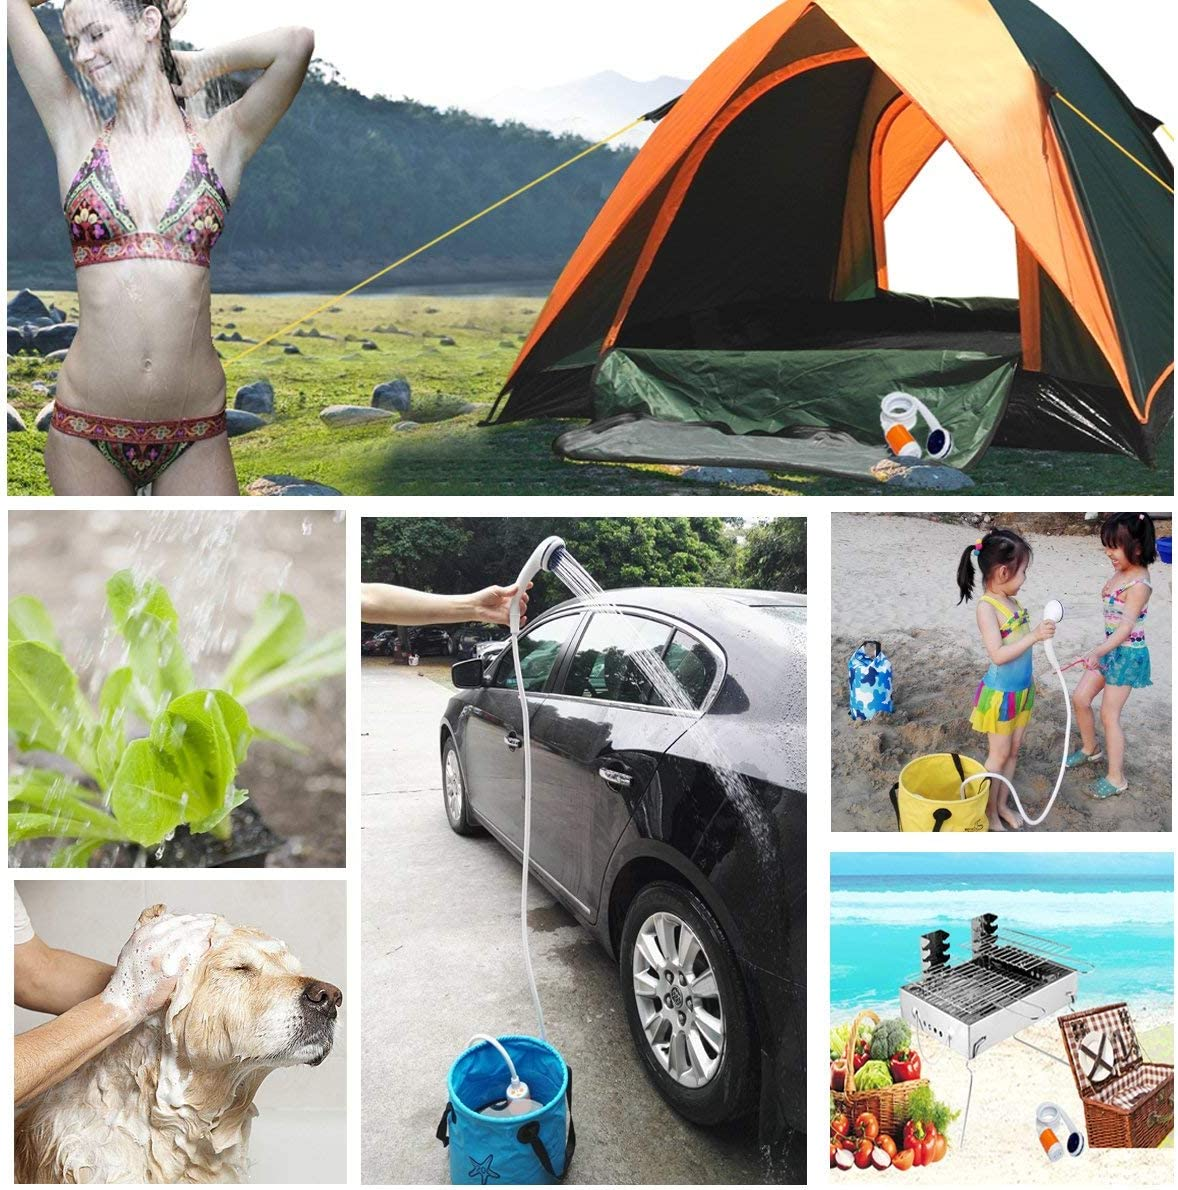 Iron Hammer Portable Shower Camp Shower Rechargeable Shower high Capacity 4800mAh Camping Shower pet Shower, with Shower Valve (Shower with Water Valve) : Sports & Outdoors